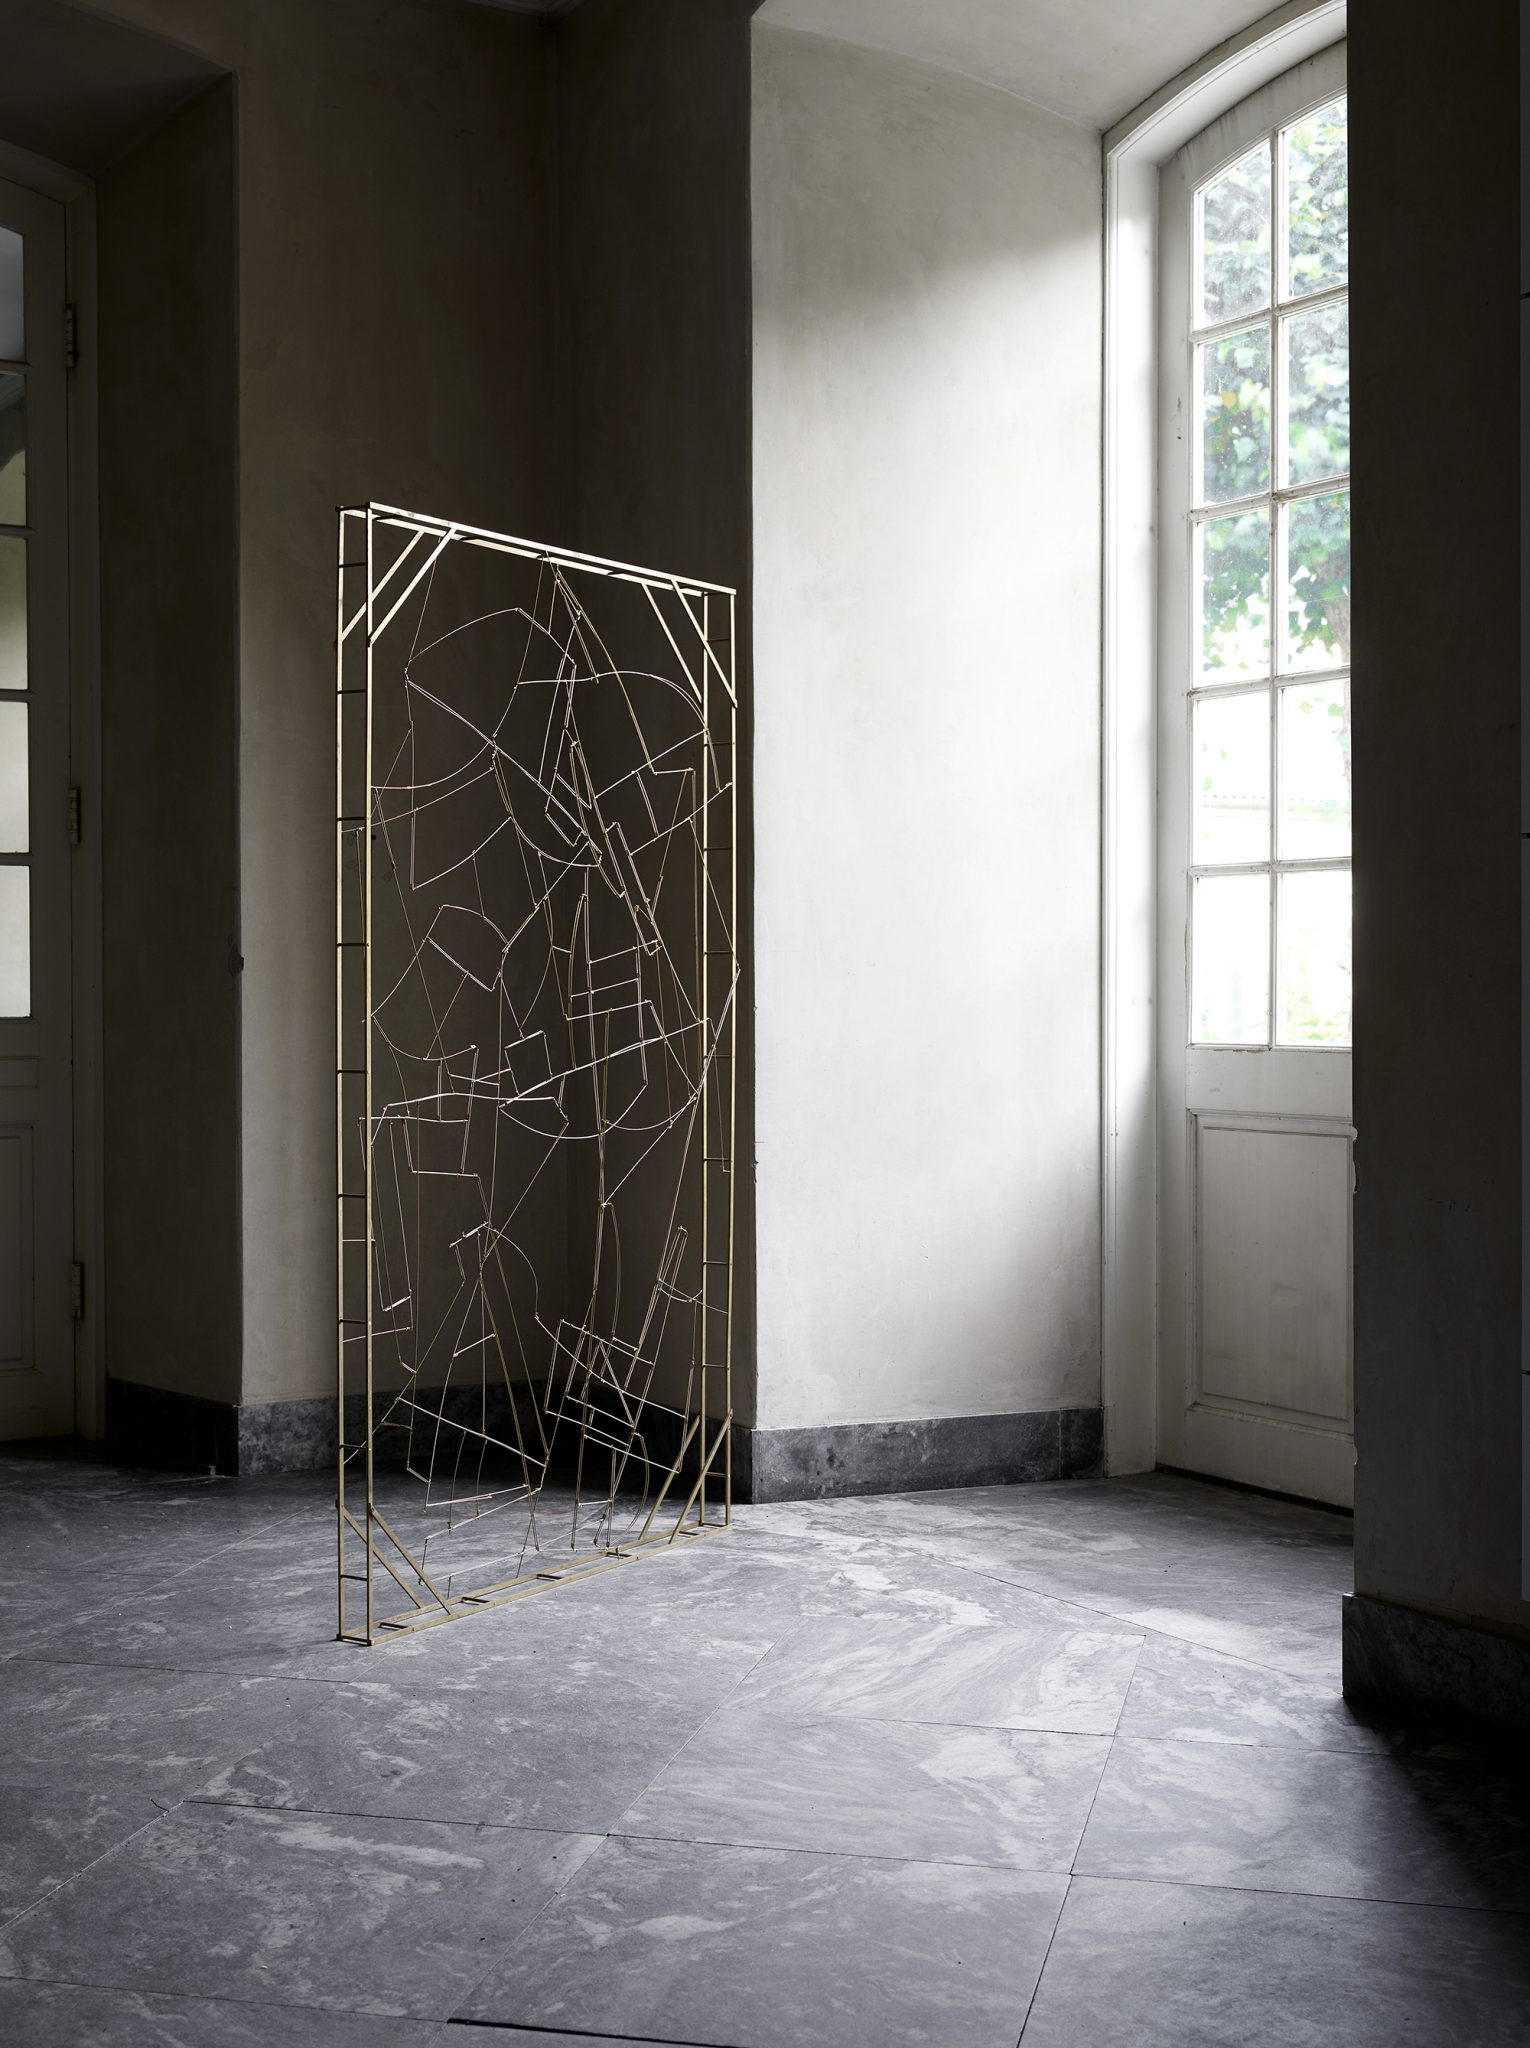 Standing Frame art installation handmade and design Kaja Skytte